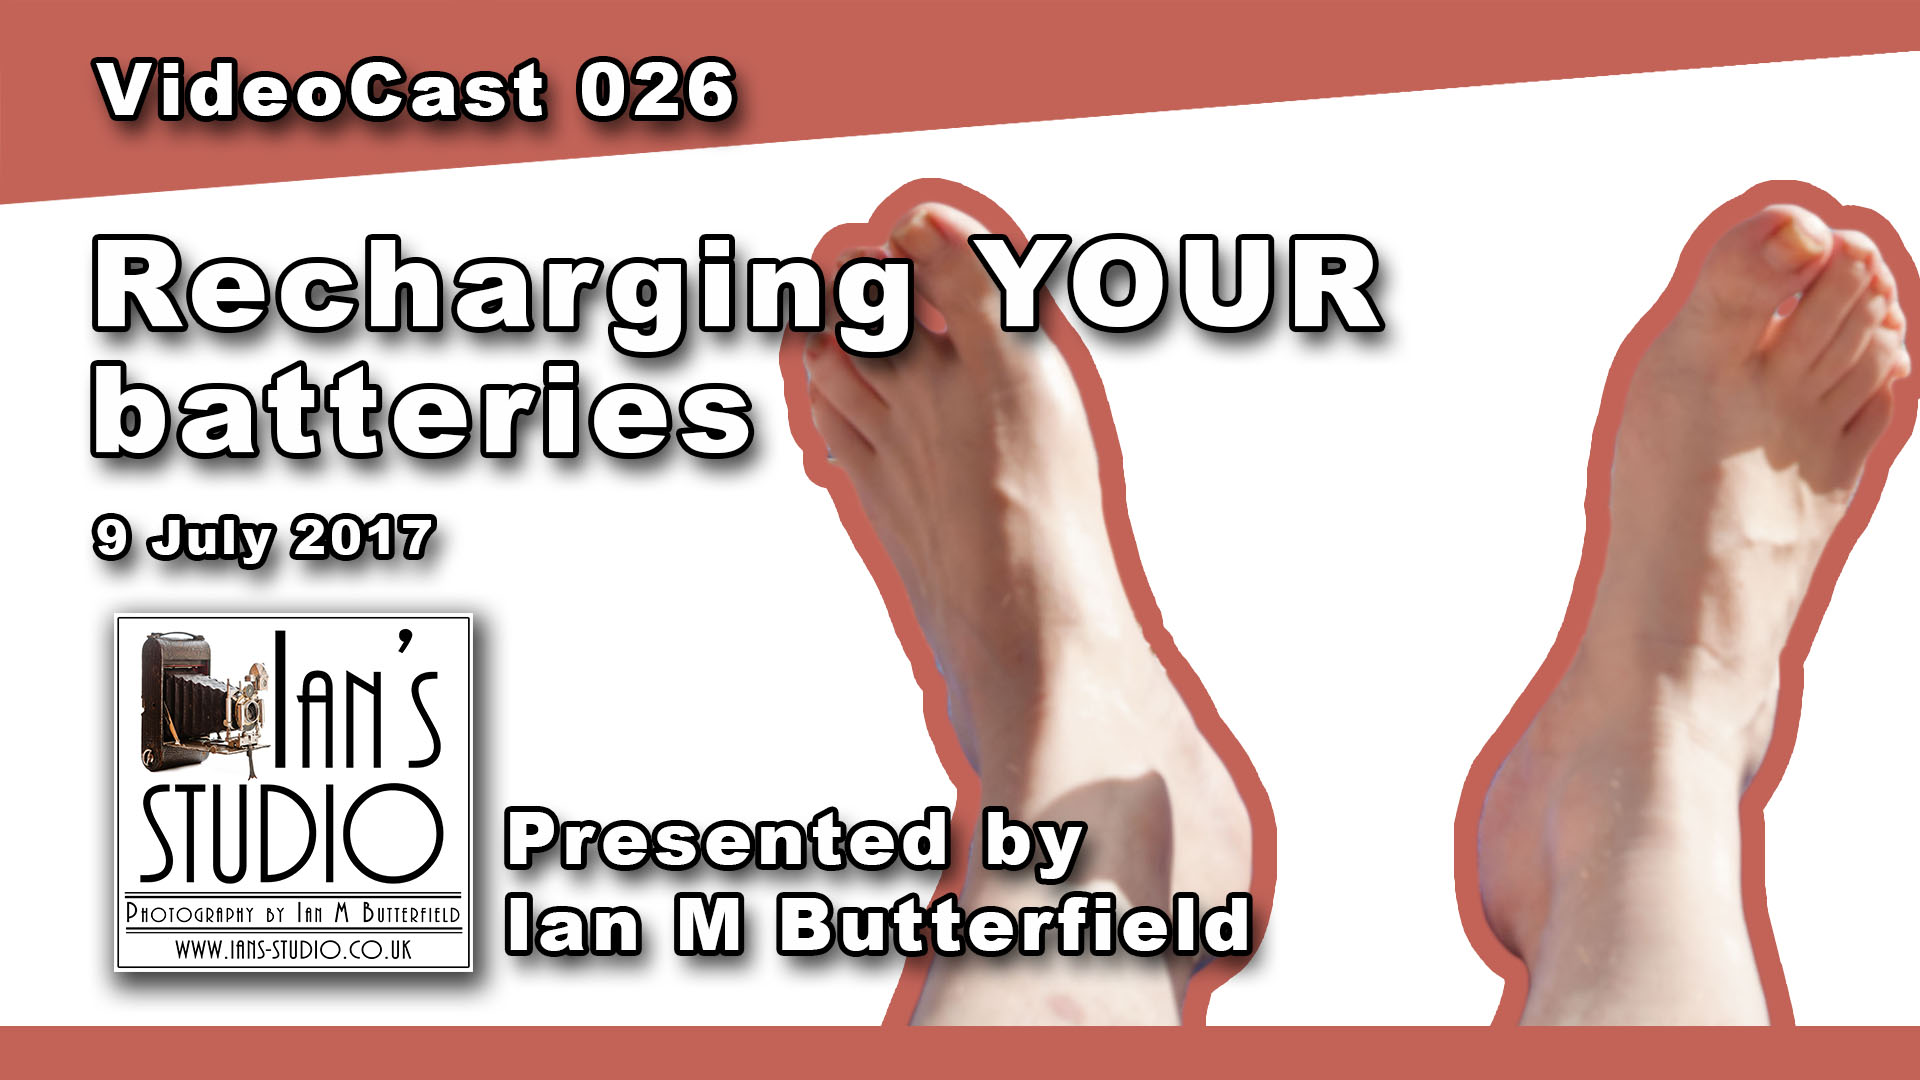 VIDEOCAST 026: Recharging your batteries